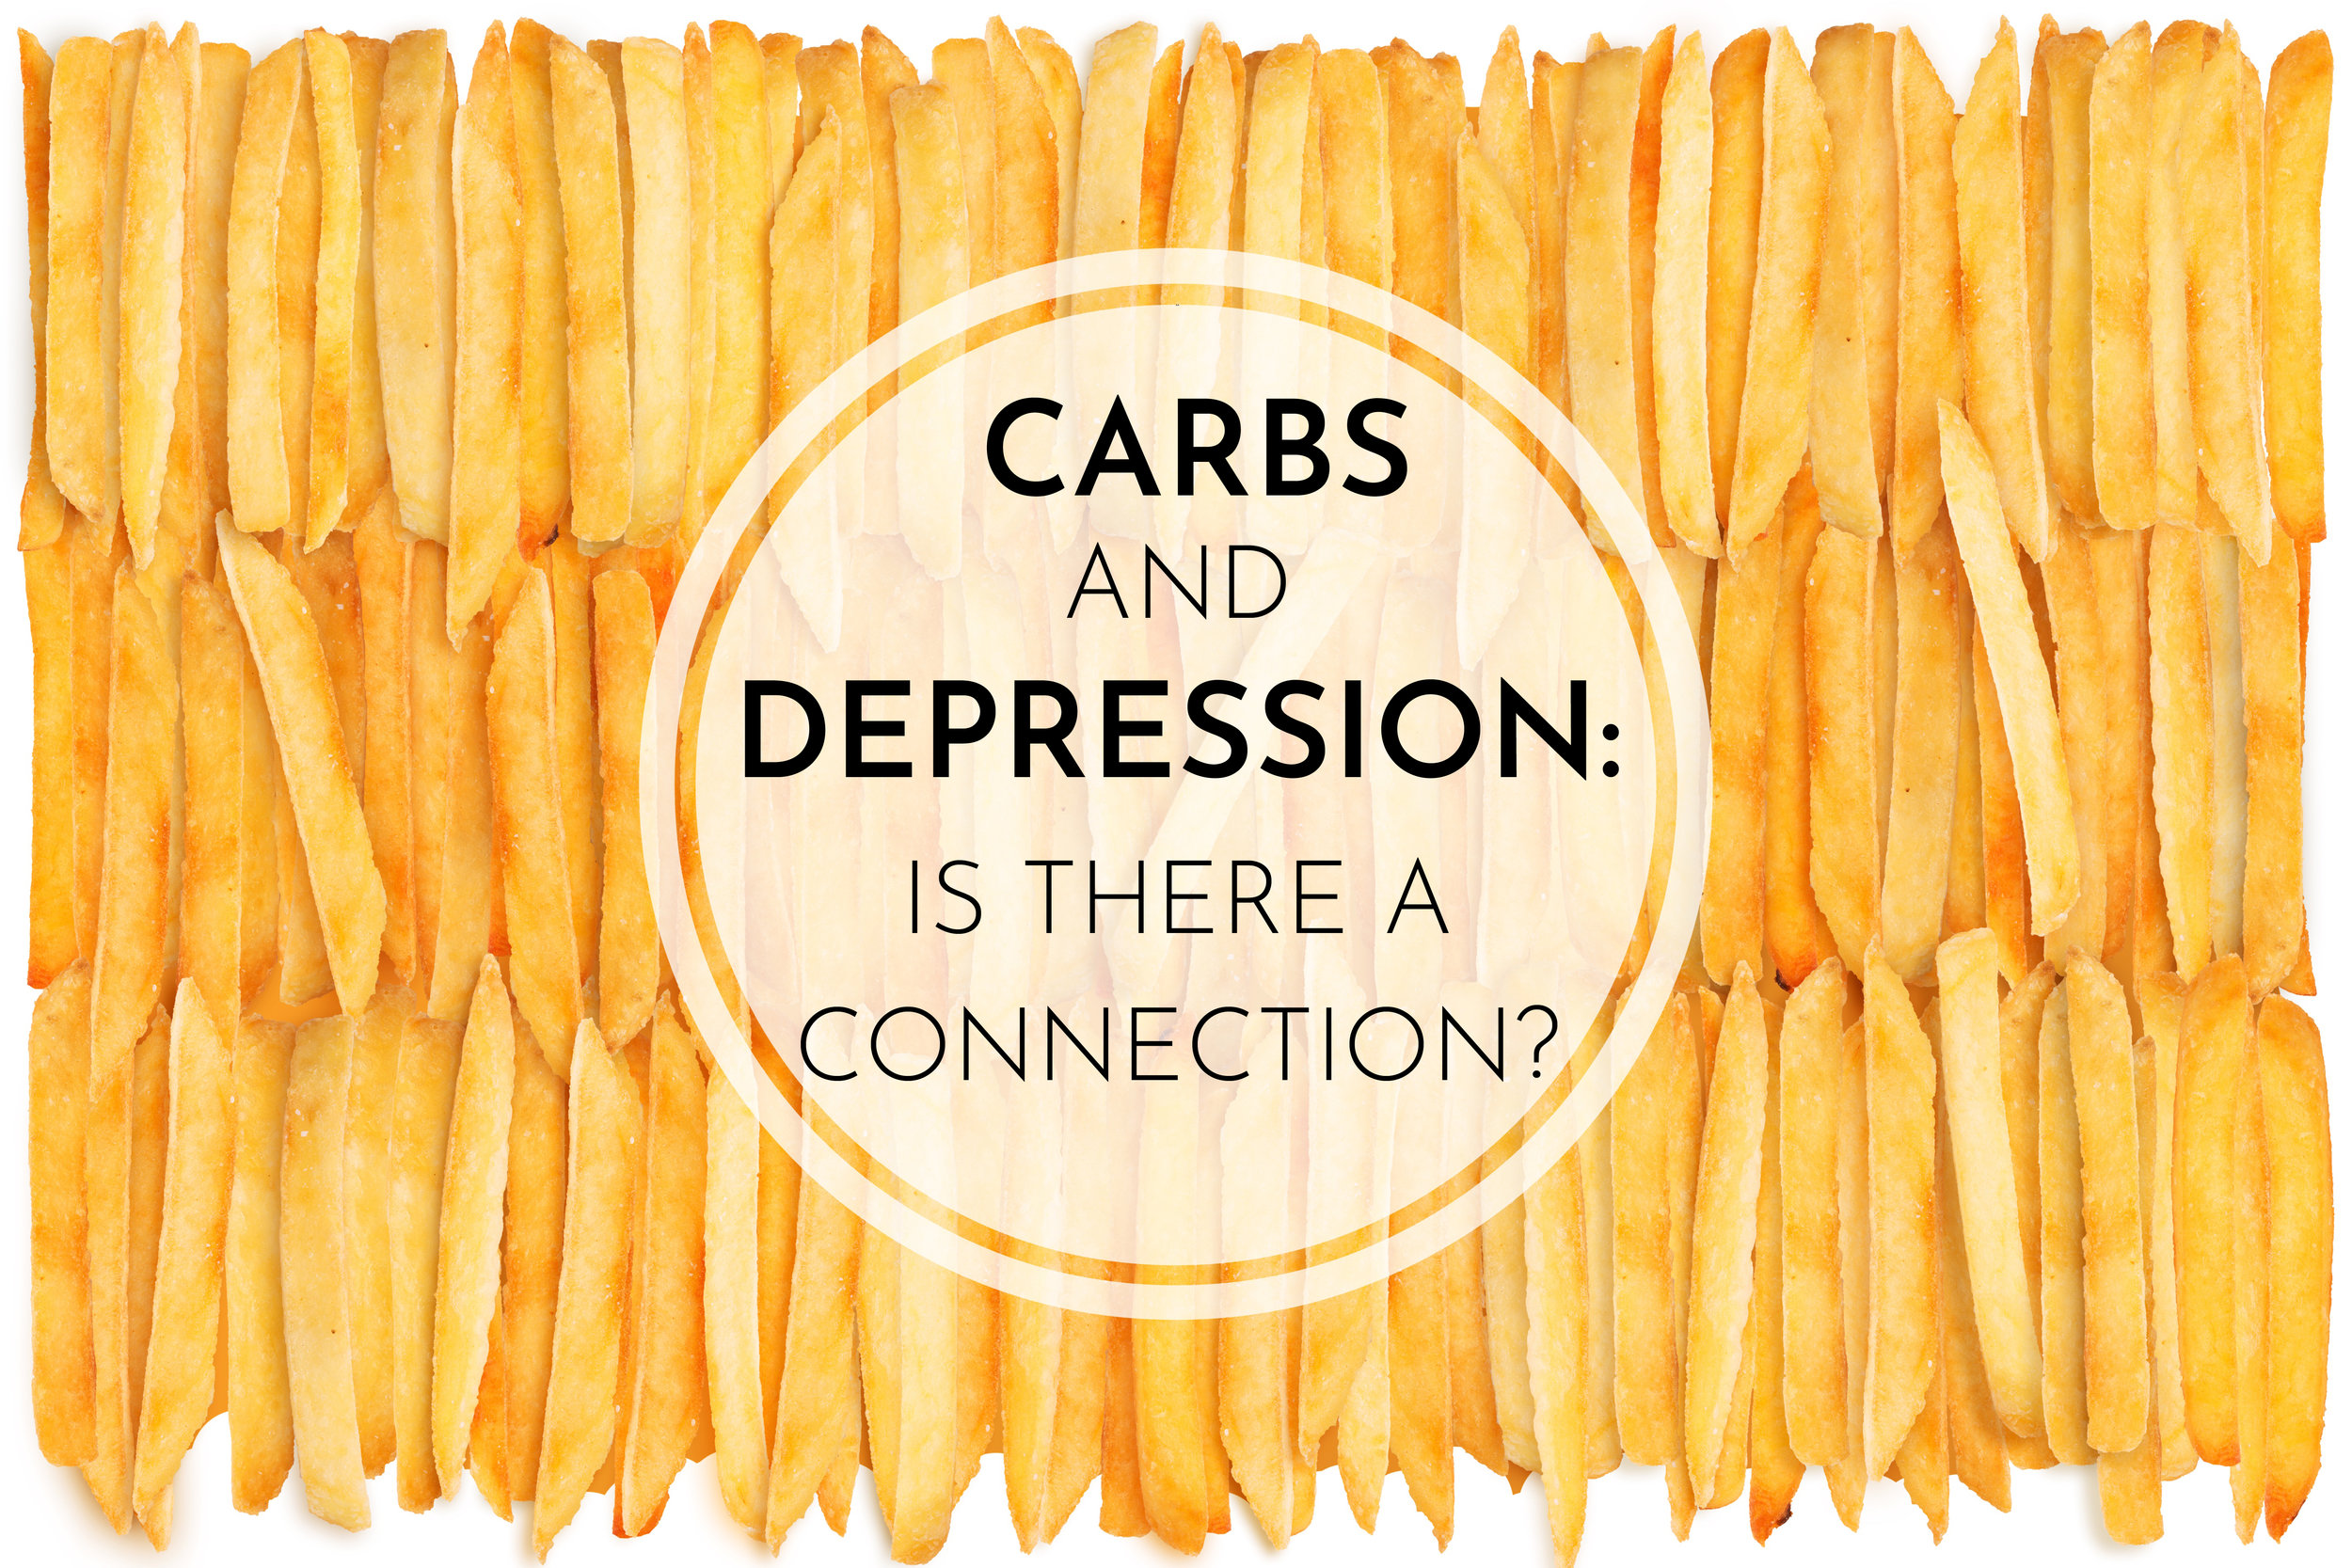 Carbs and Depression: Is There a Connection? - CarolynWilliamsRD.com